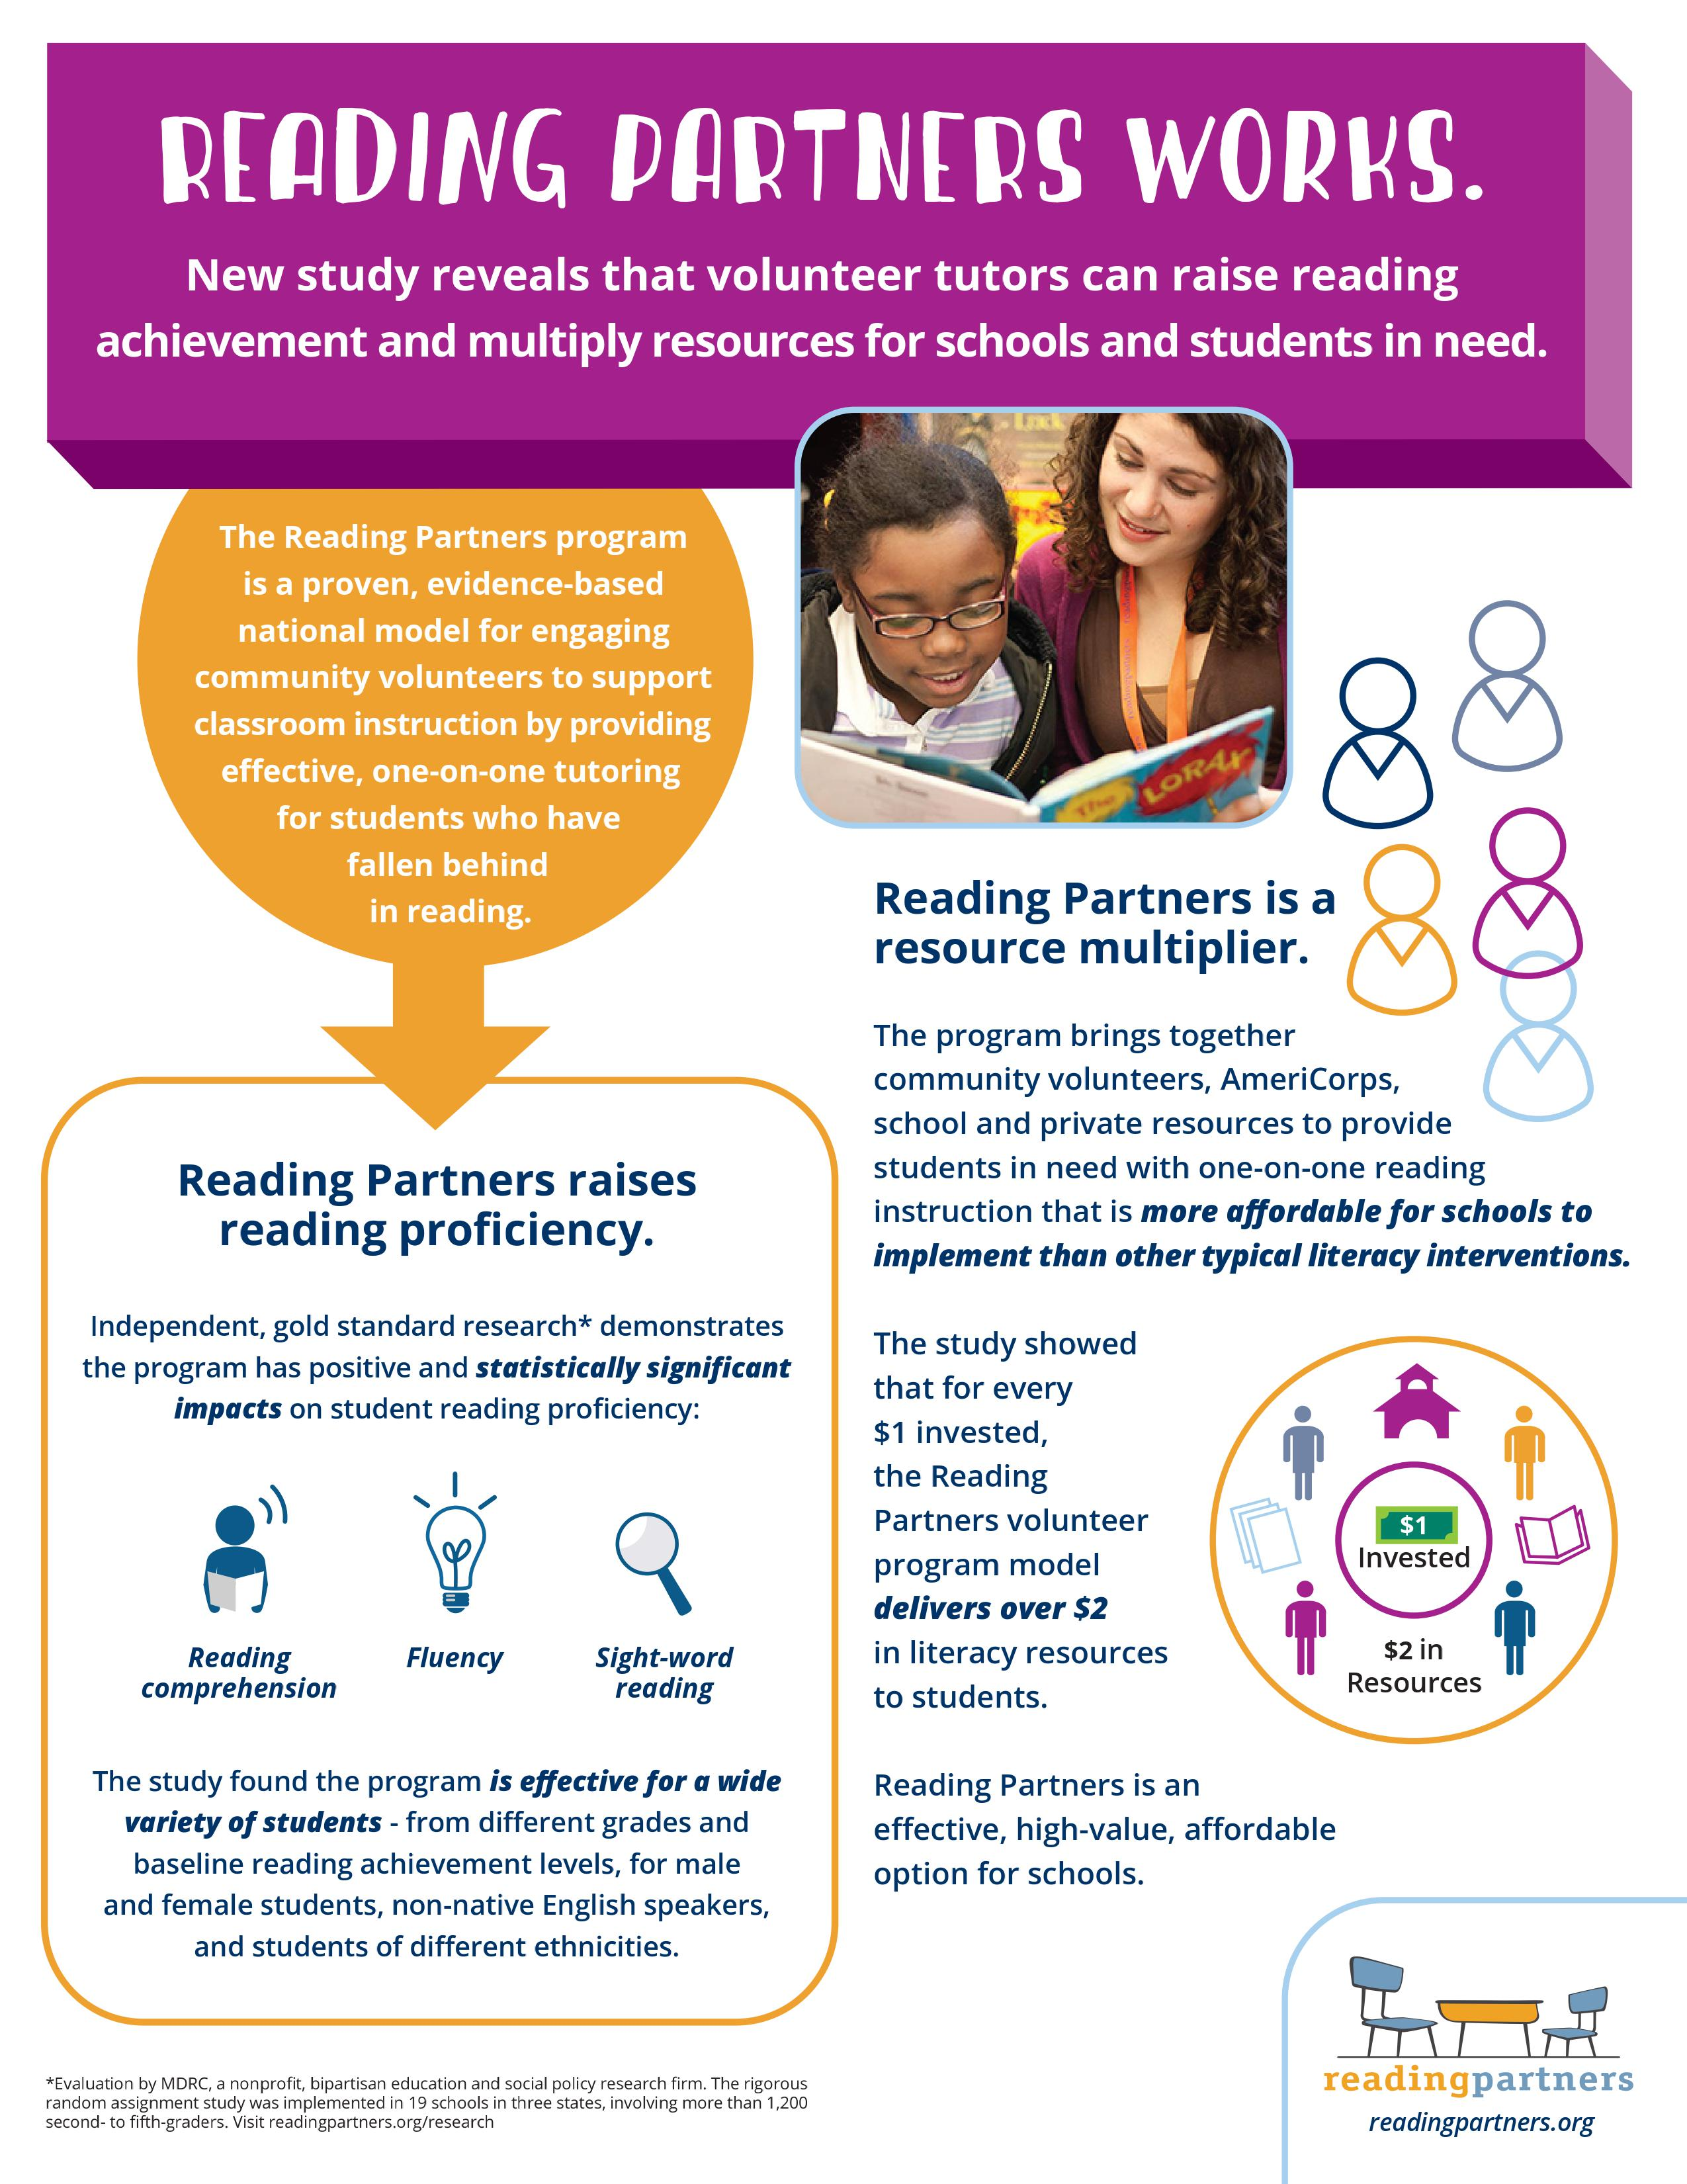 Worksheet Reading Comprehension Program program impact research evaluation reading partners view the mdrc web page highlighting as a tier 1 strong evidence for districts based on guidelines of every